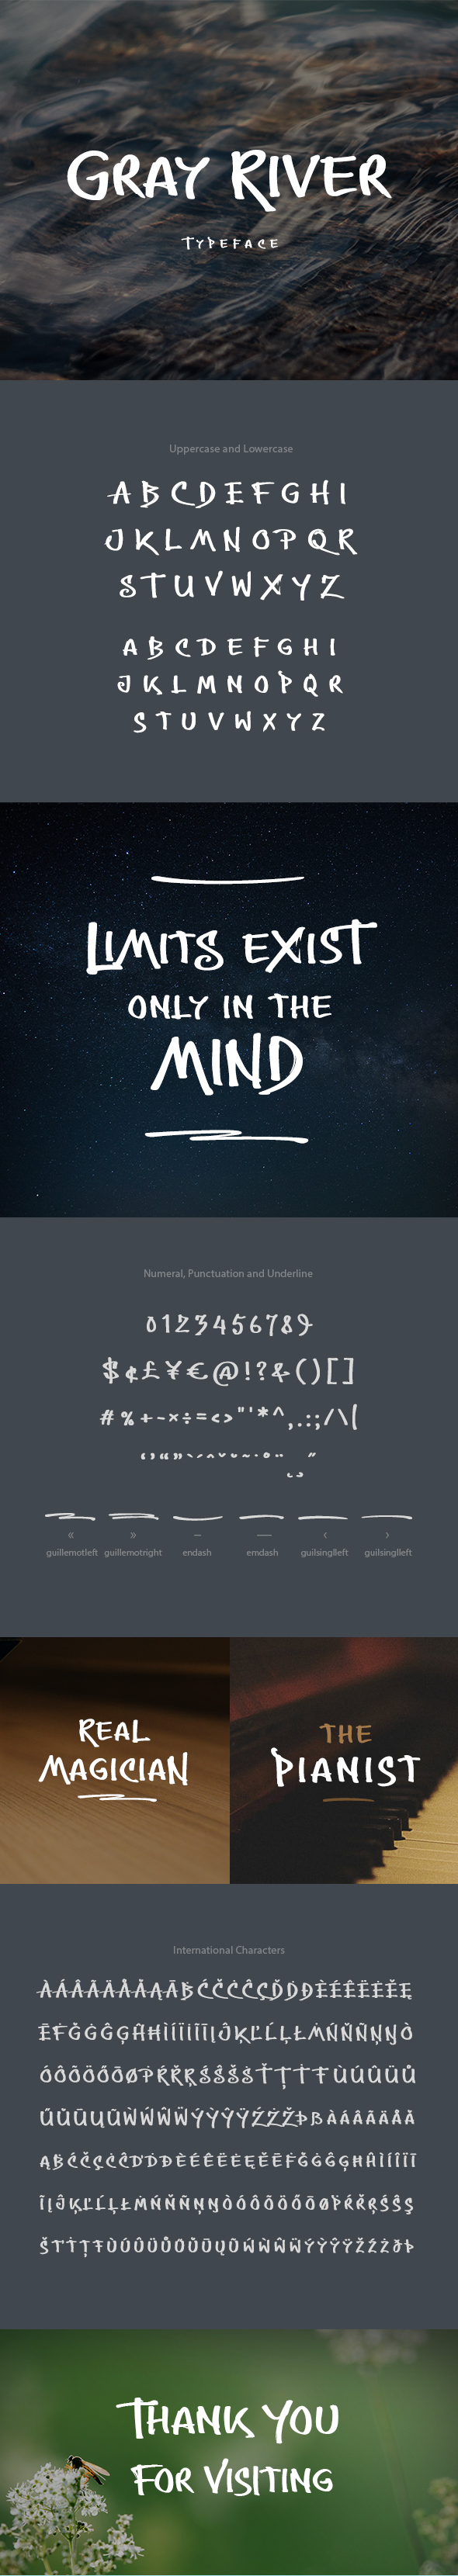 Gray River Font - Hand-writing Script